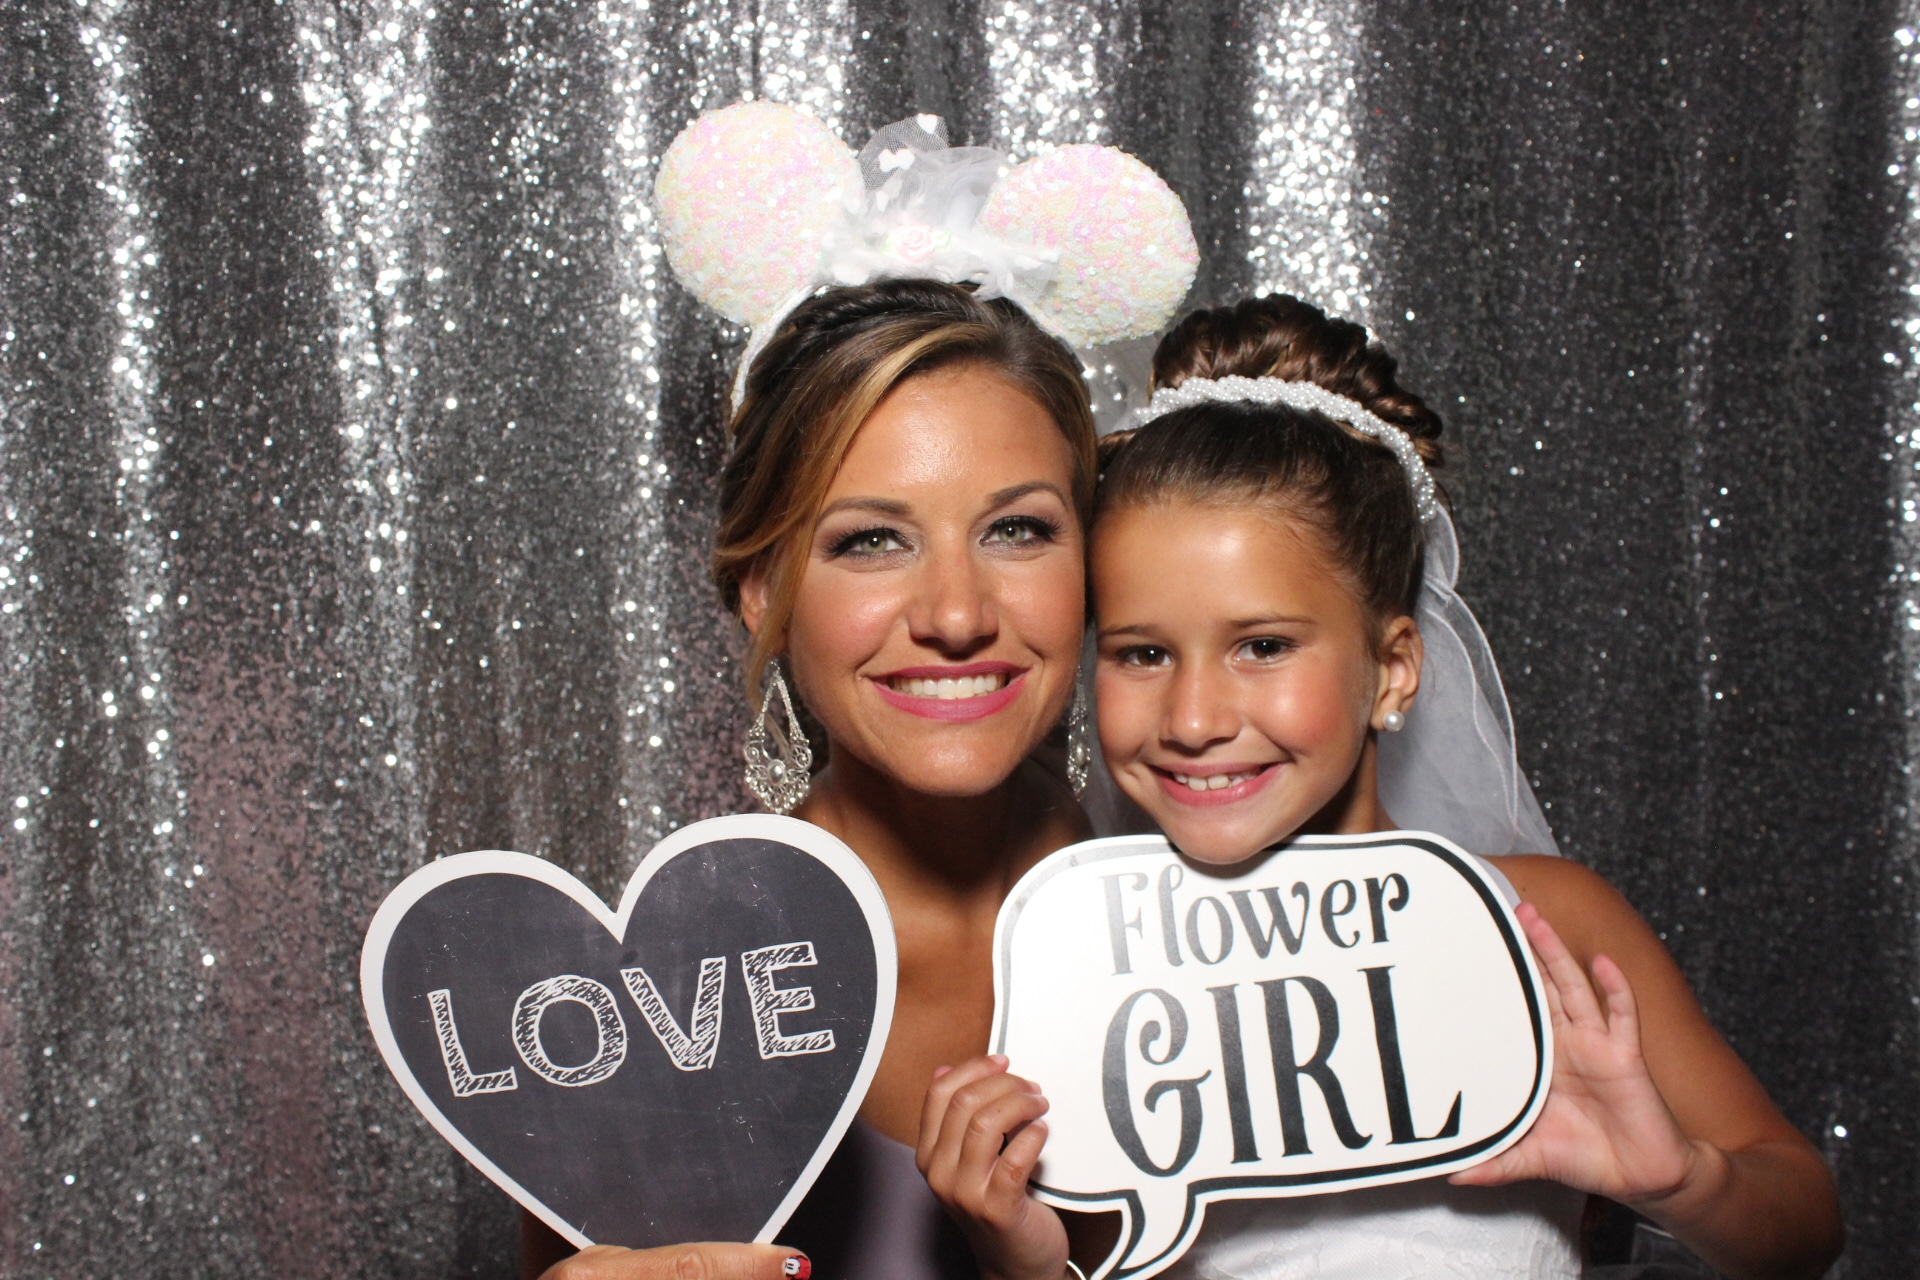 Party Shots Orlando - woman and flower girl in photo booth